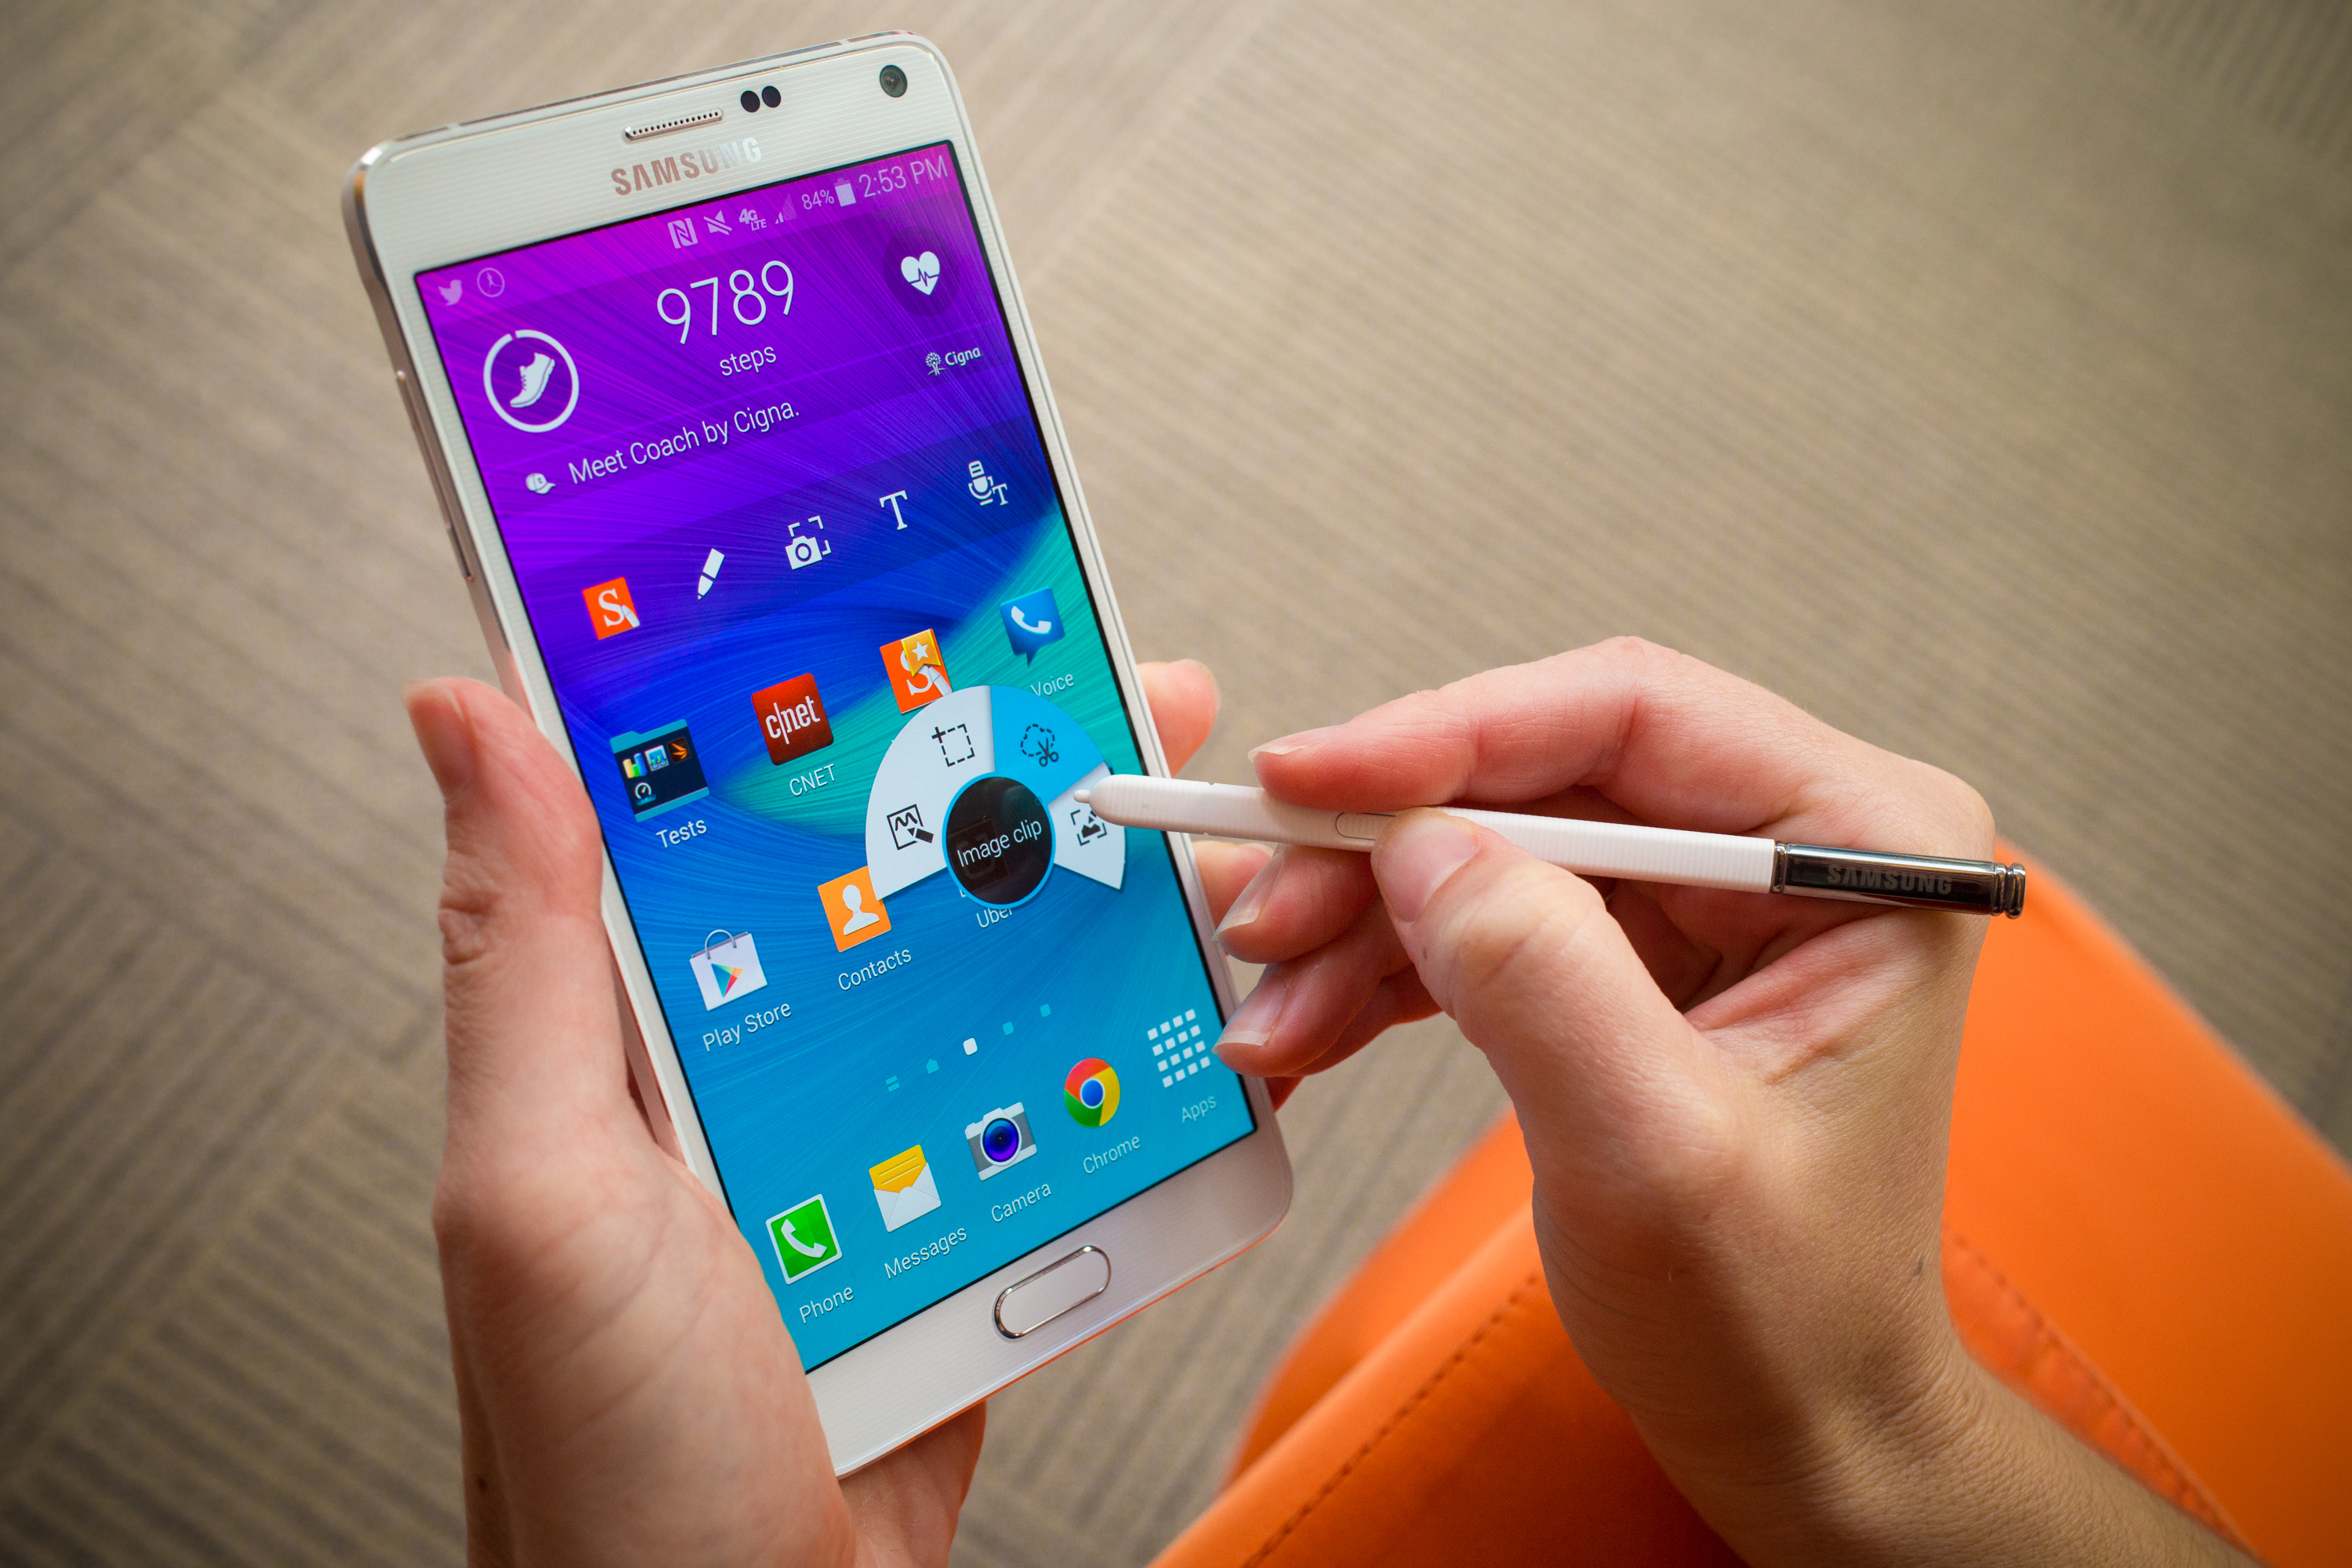 Samsung Galaxy Note 4 review - CNET